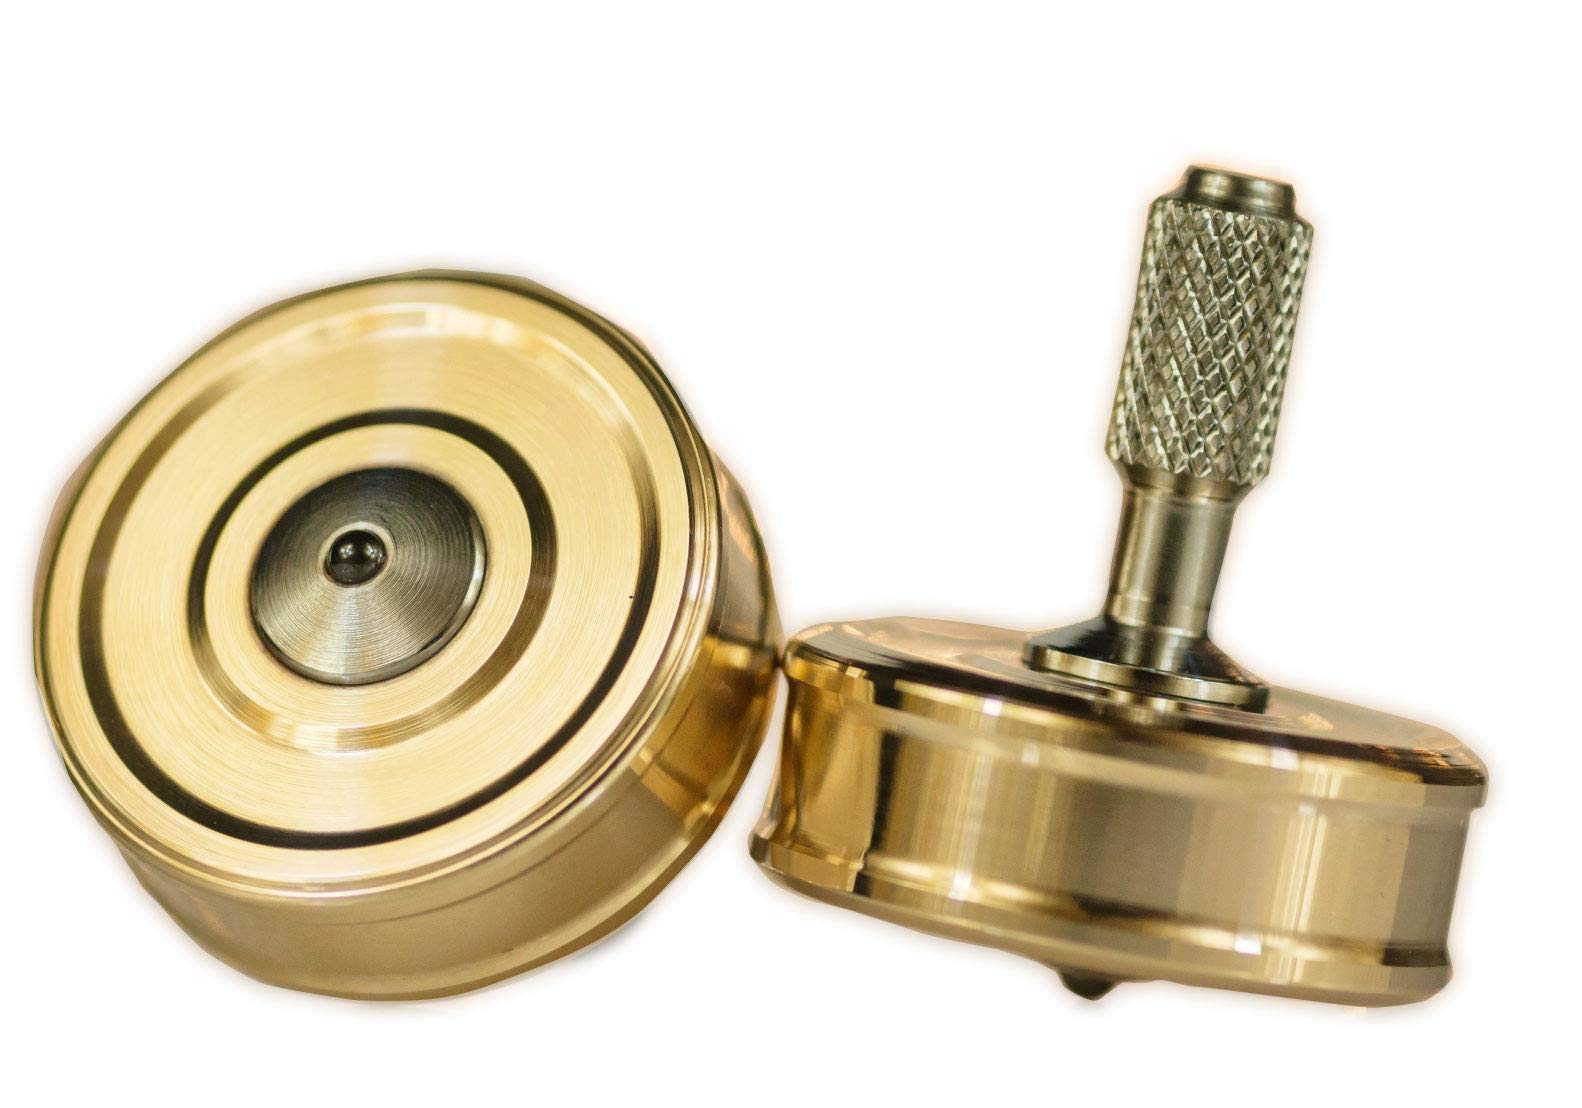 Bronze Pocket Top Precision Spinning Desk Toy for a Hand Made High End Collection by RCS ProFab INC. (Image #9)